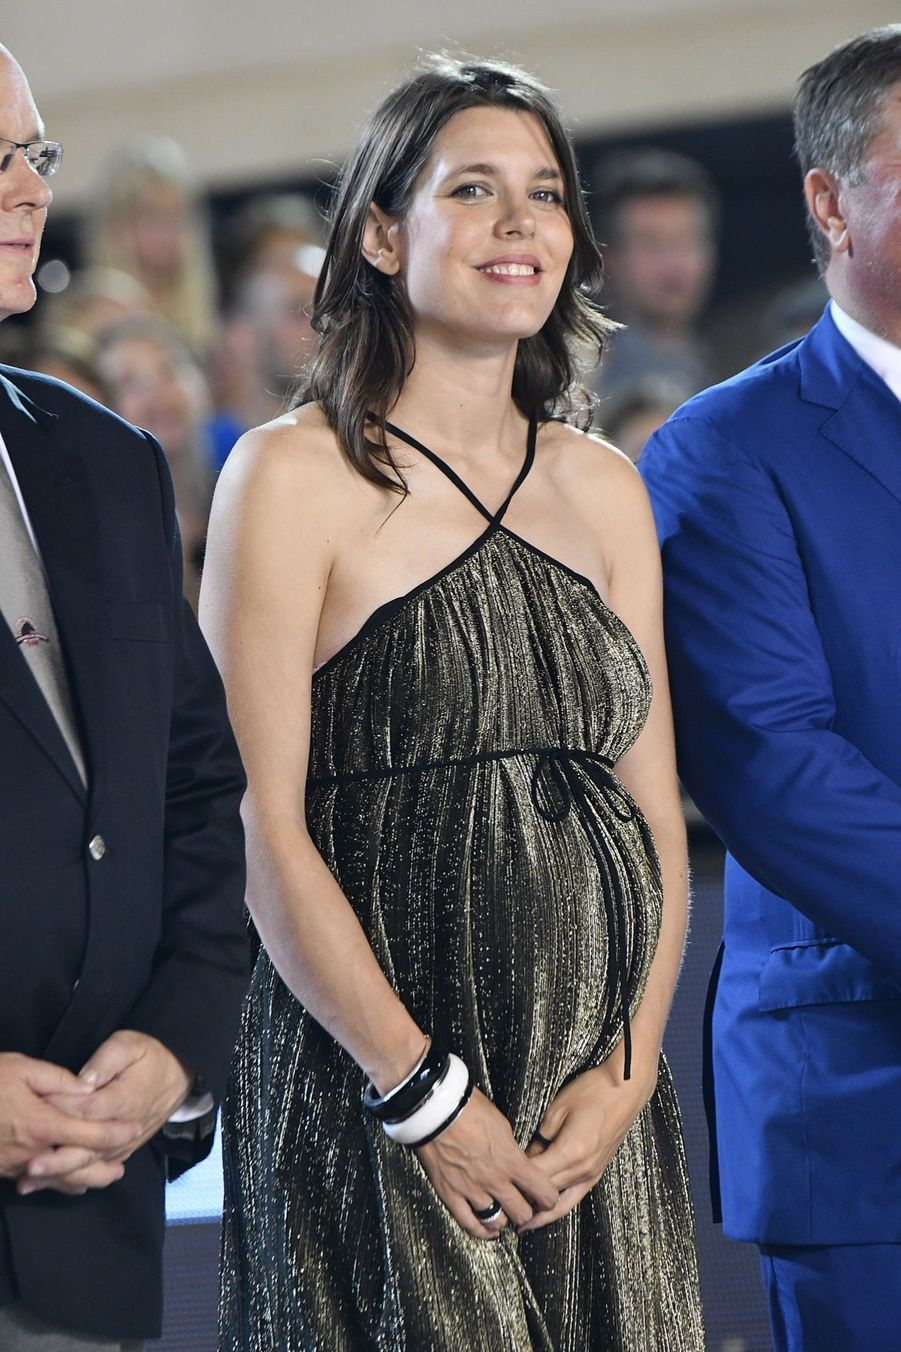 Charlotte Casiraghi Très Enceinte Au Jumping International De Monte Carlo ( 15